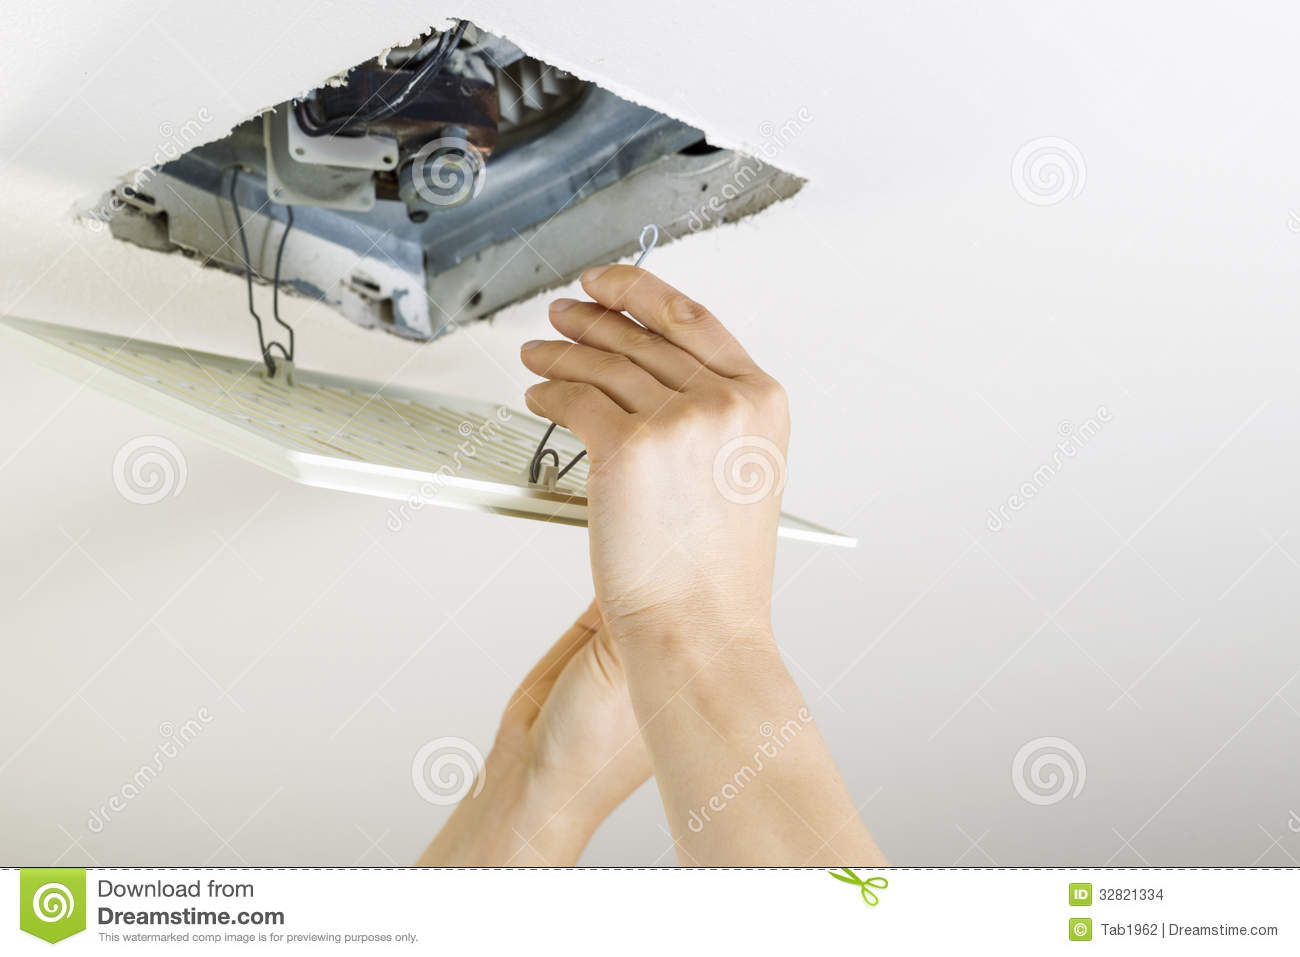 Installing clean bathroom fan vent cover stock images for 9 bathroom fan cover